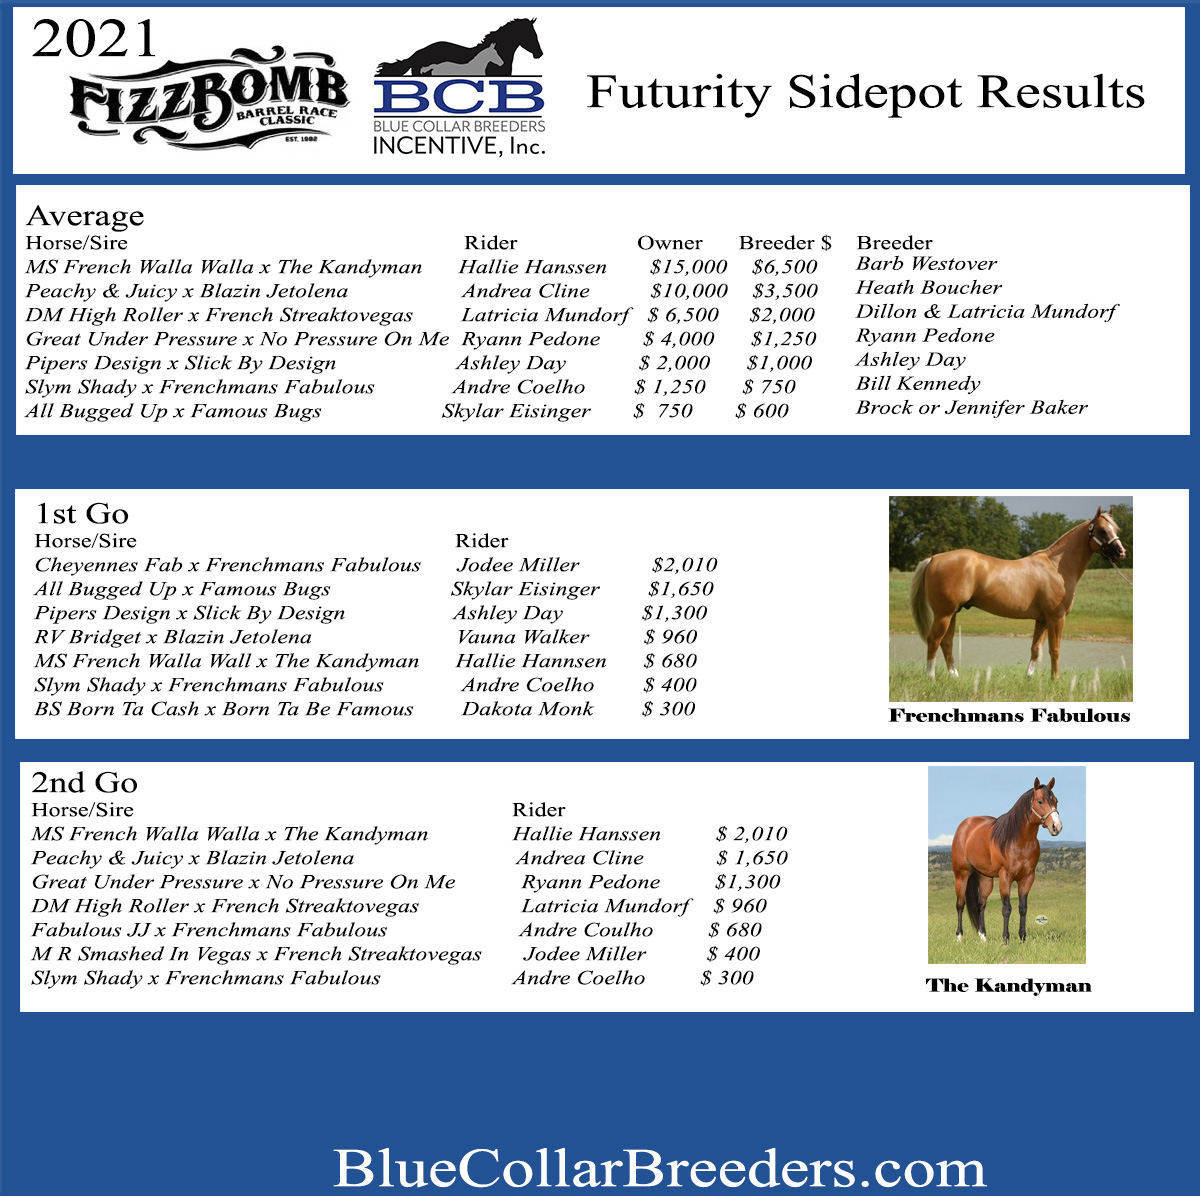 Great Under Pressure 15.229 at the Fizz Bomb Futurity for Blue Collar Breeders Money, 3rd in the 2nd Go and 4th in the average.